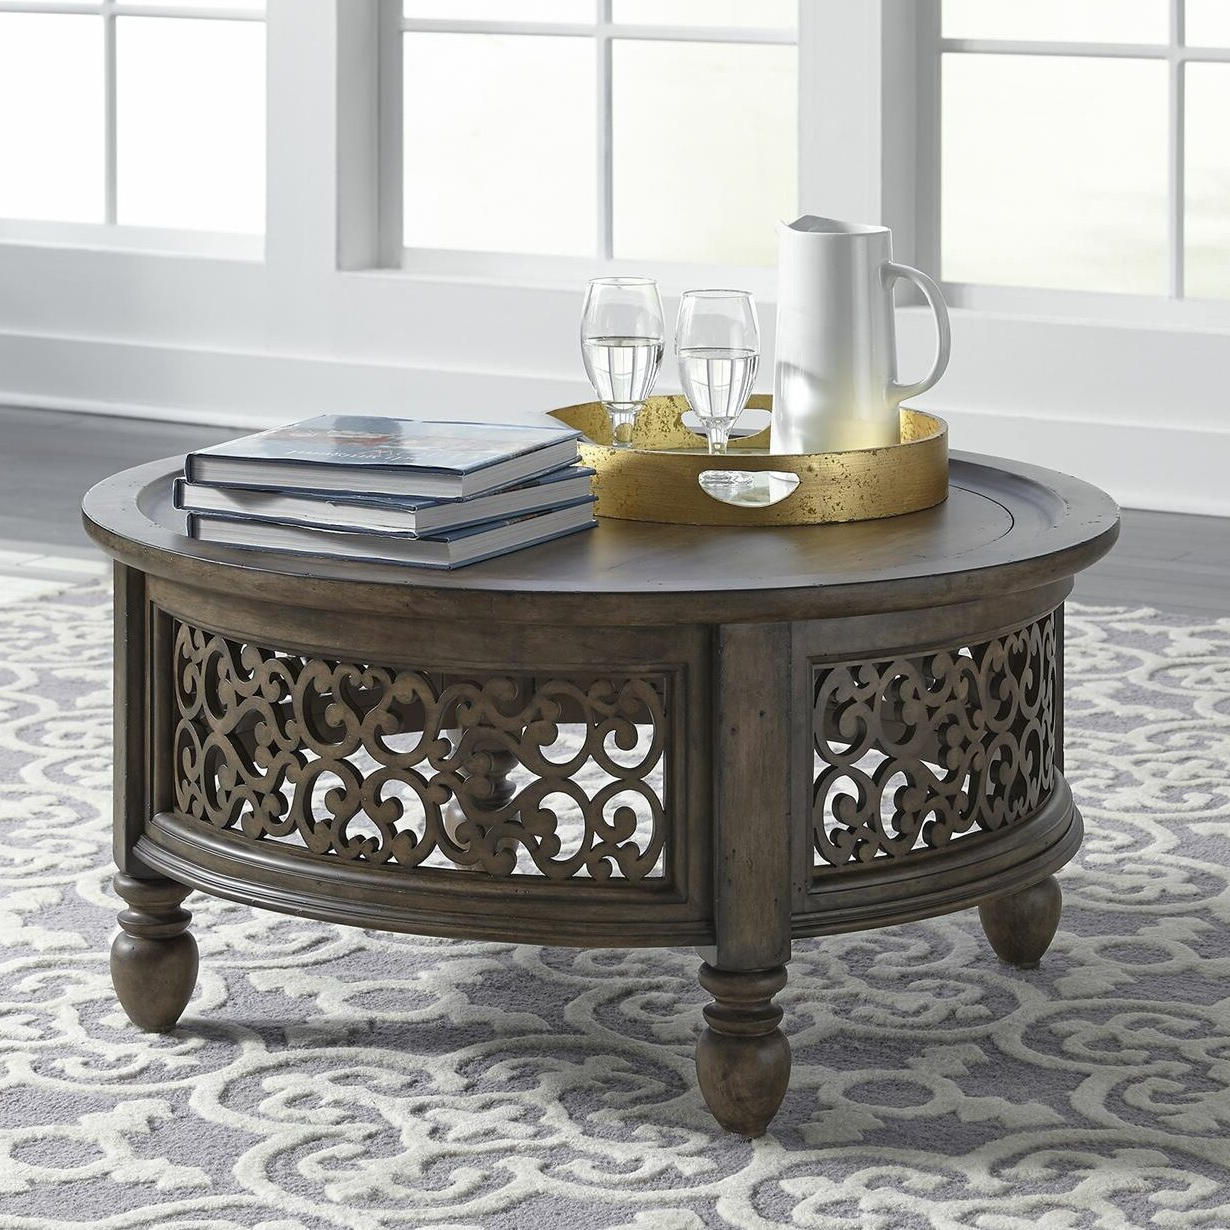 Queener 5 Piece Dining Sets Within Well Liked Astoria Grand Gandy Coffee Table With Tray Top (View 8 of 25)